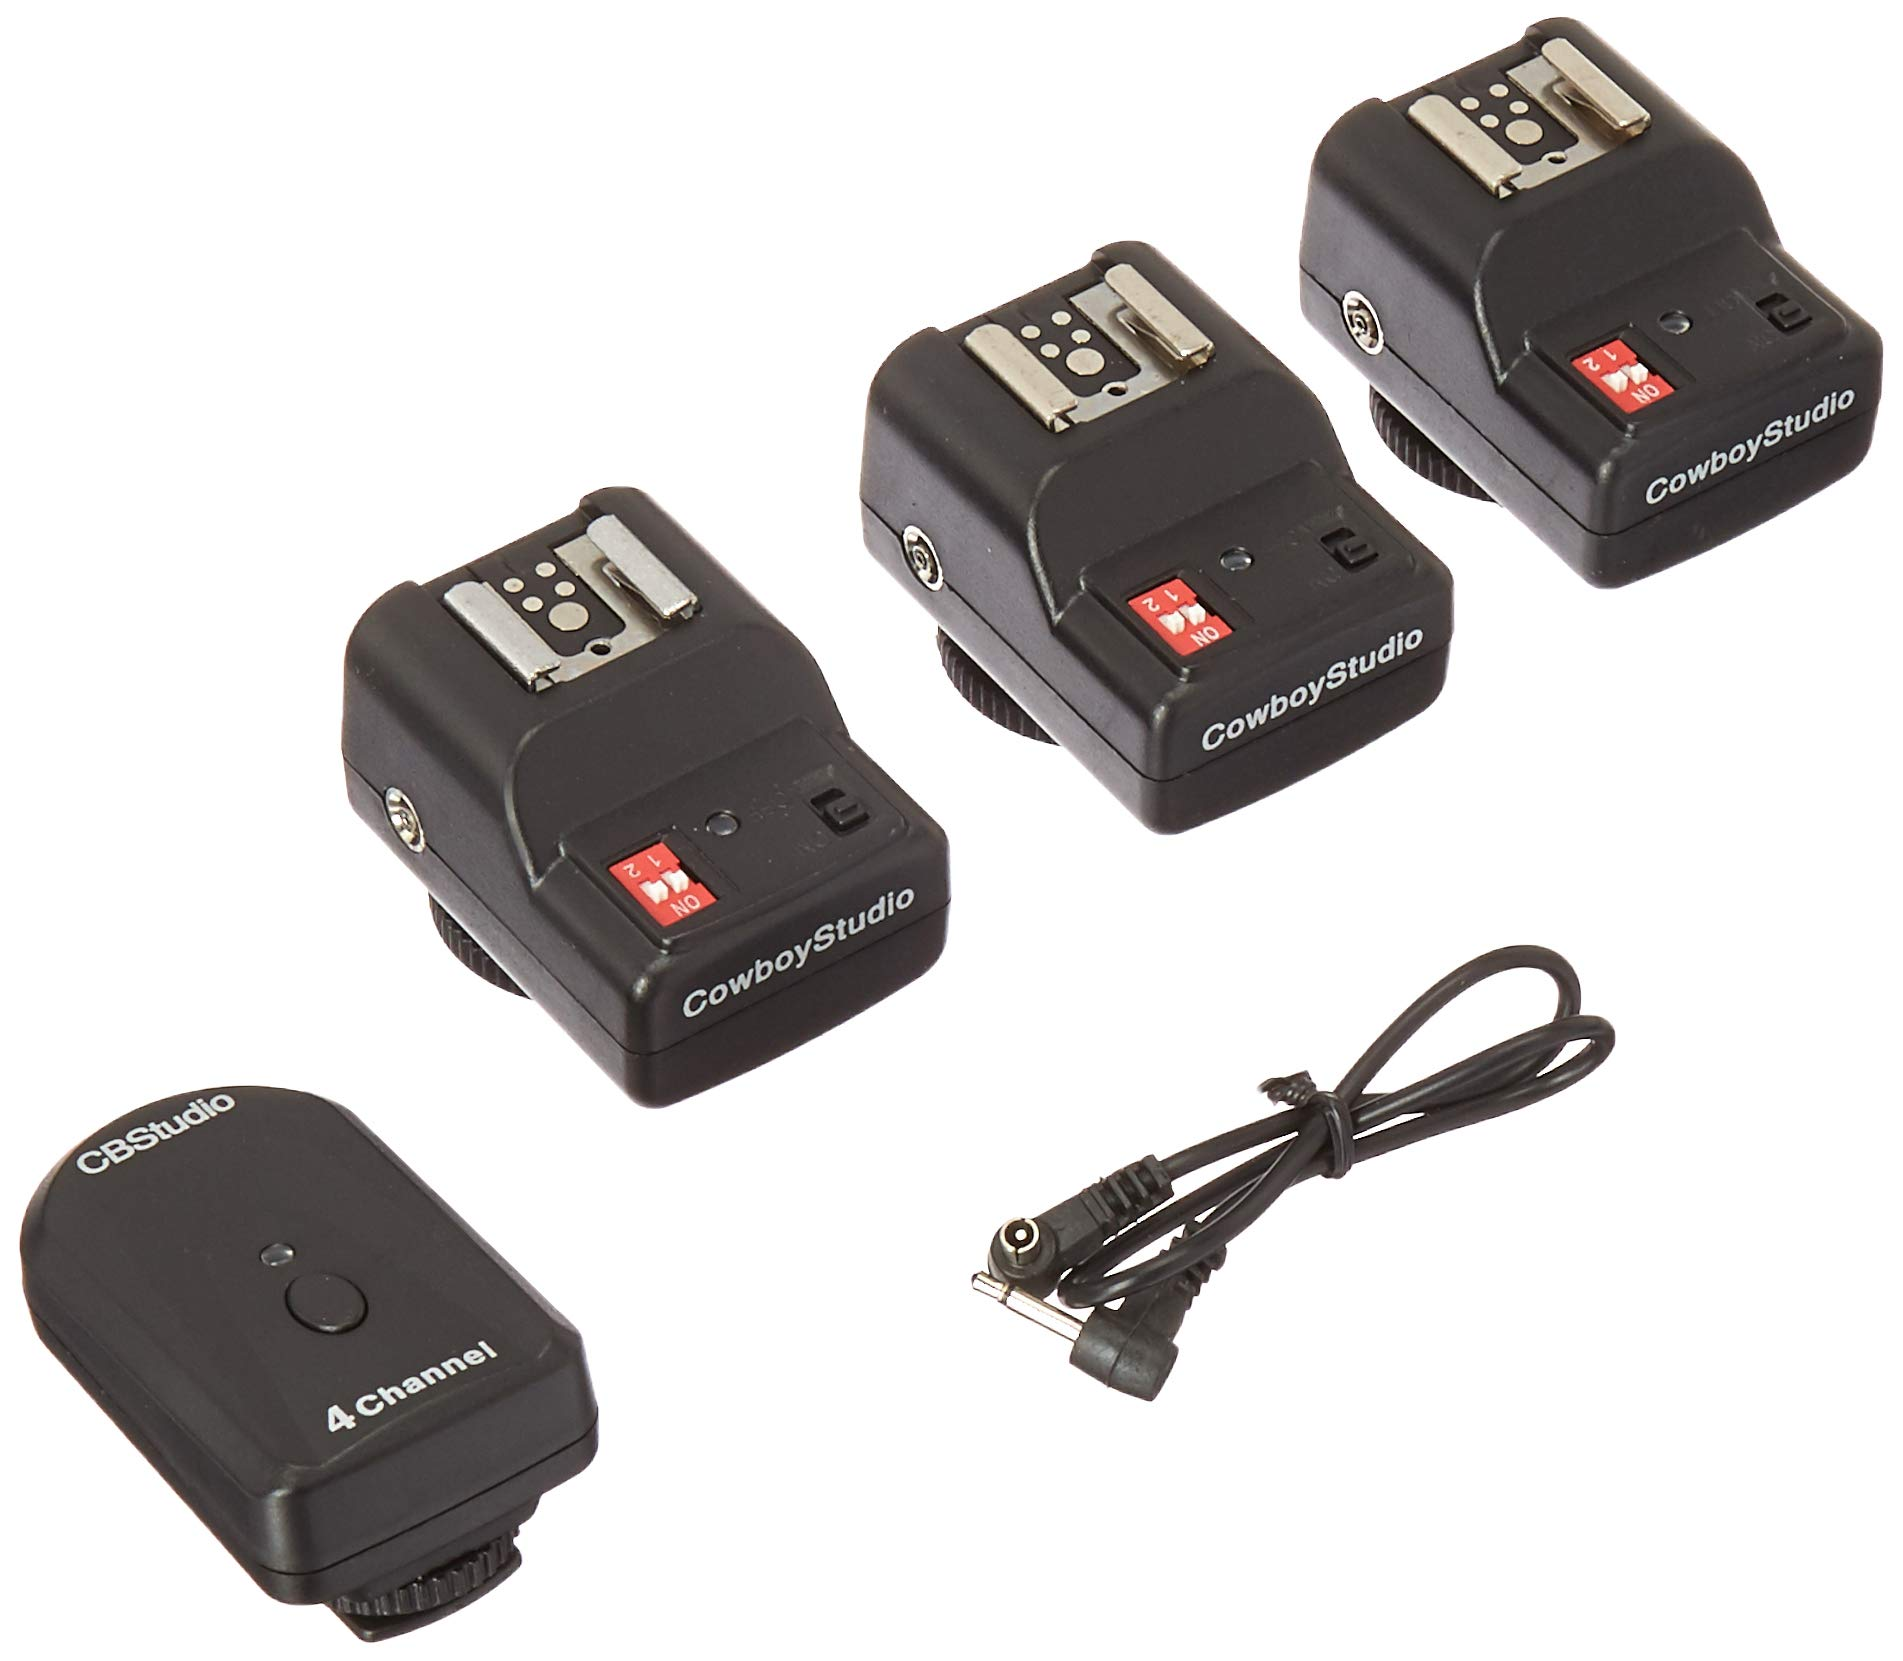 CowboyStudio Channel Wireless Flash Trigger Set for External Speelights with 1 Trigger & 3 Receivers, Black (NPT-04+2xextra Receiver) by CowboyStudio